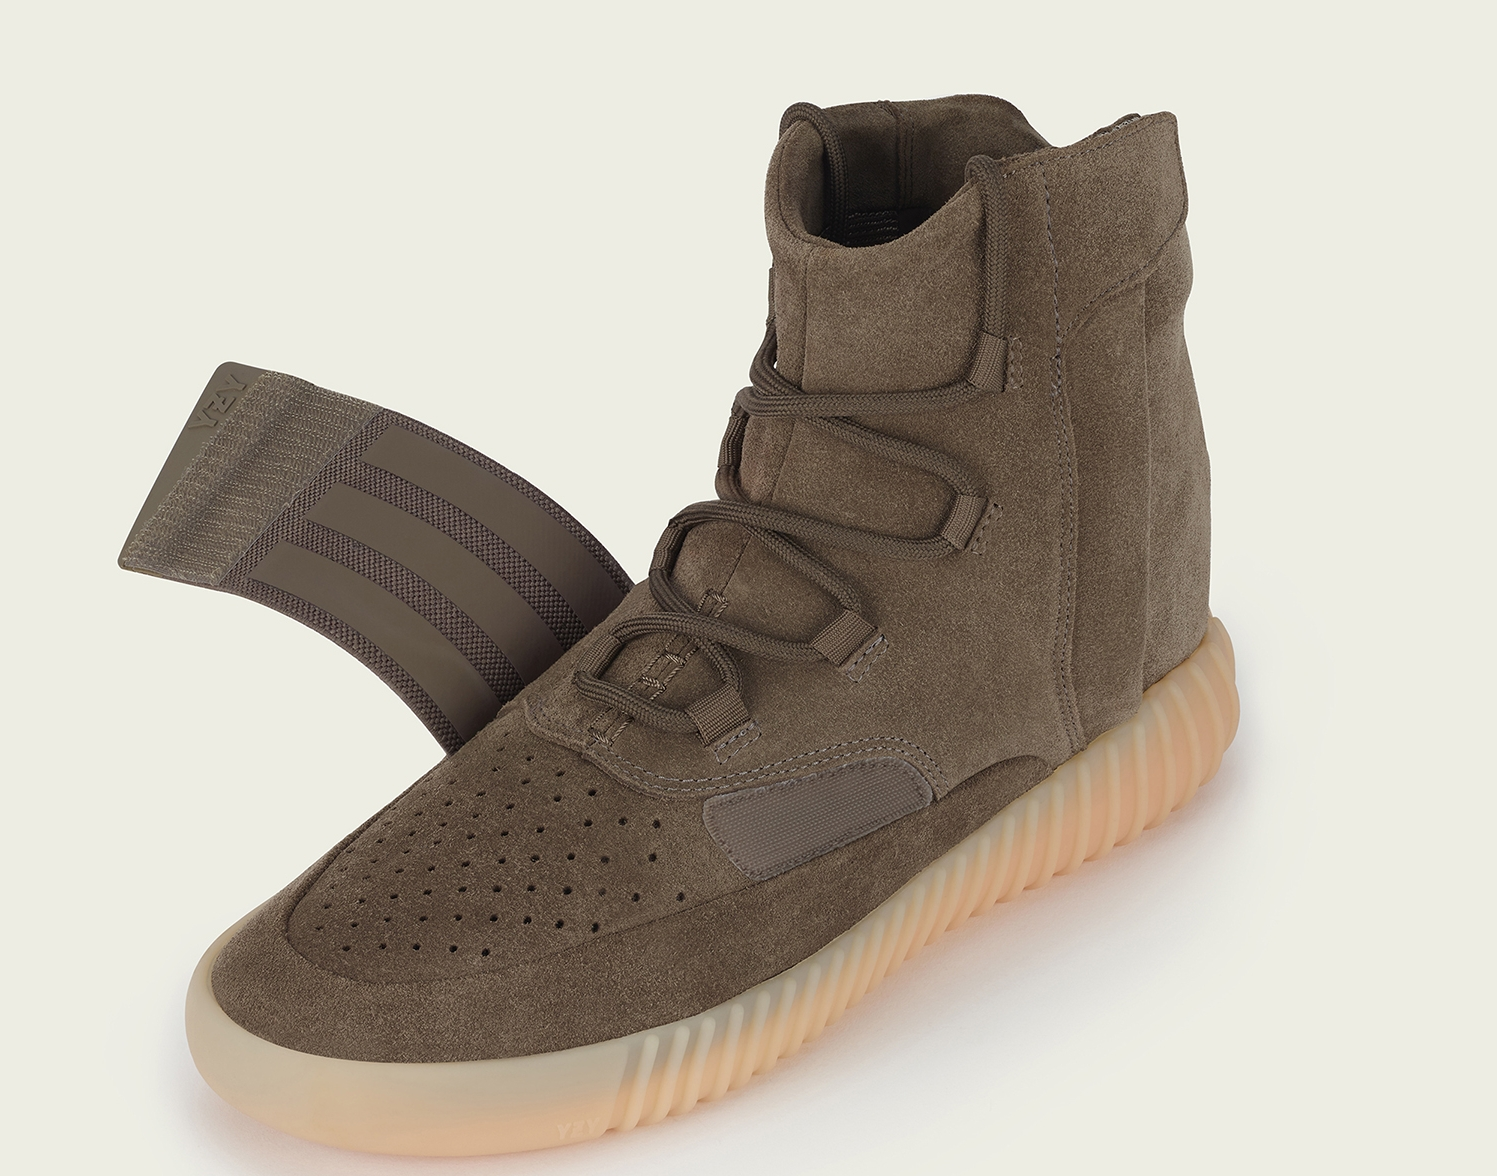 adidas-yeezy-boost-750-chocolate_03